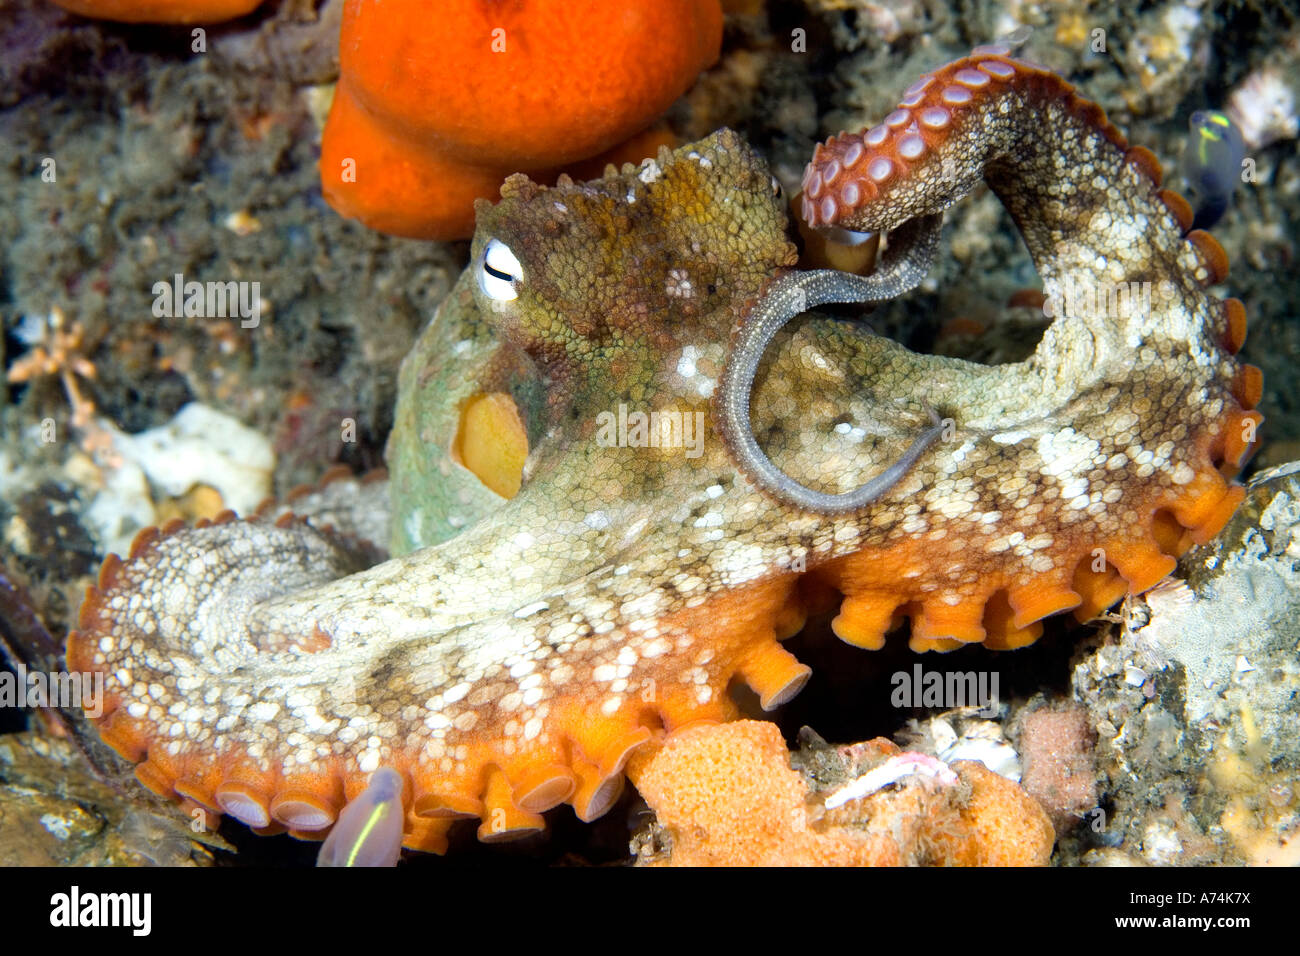 Common Sydney Octopus, Octopus tetricus. Also known as the Gloomy Octopus. Nelson Bay, Port Stephens, NSW, Australia Stock Photo